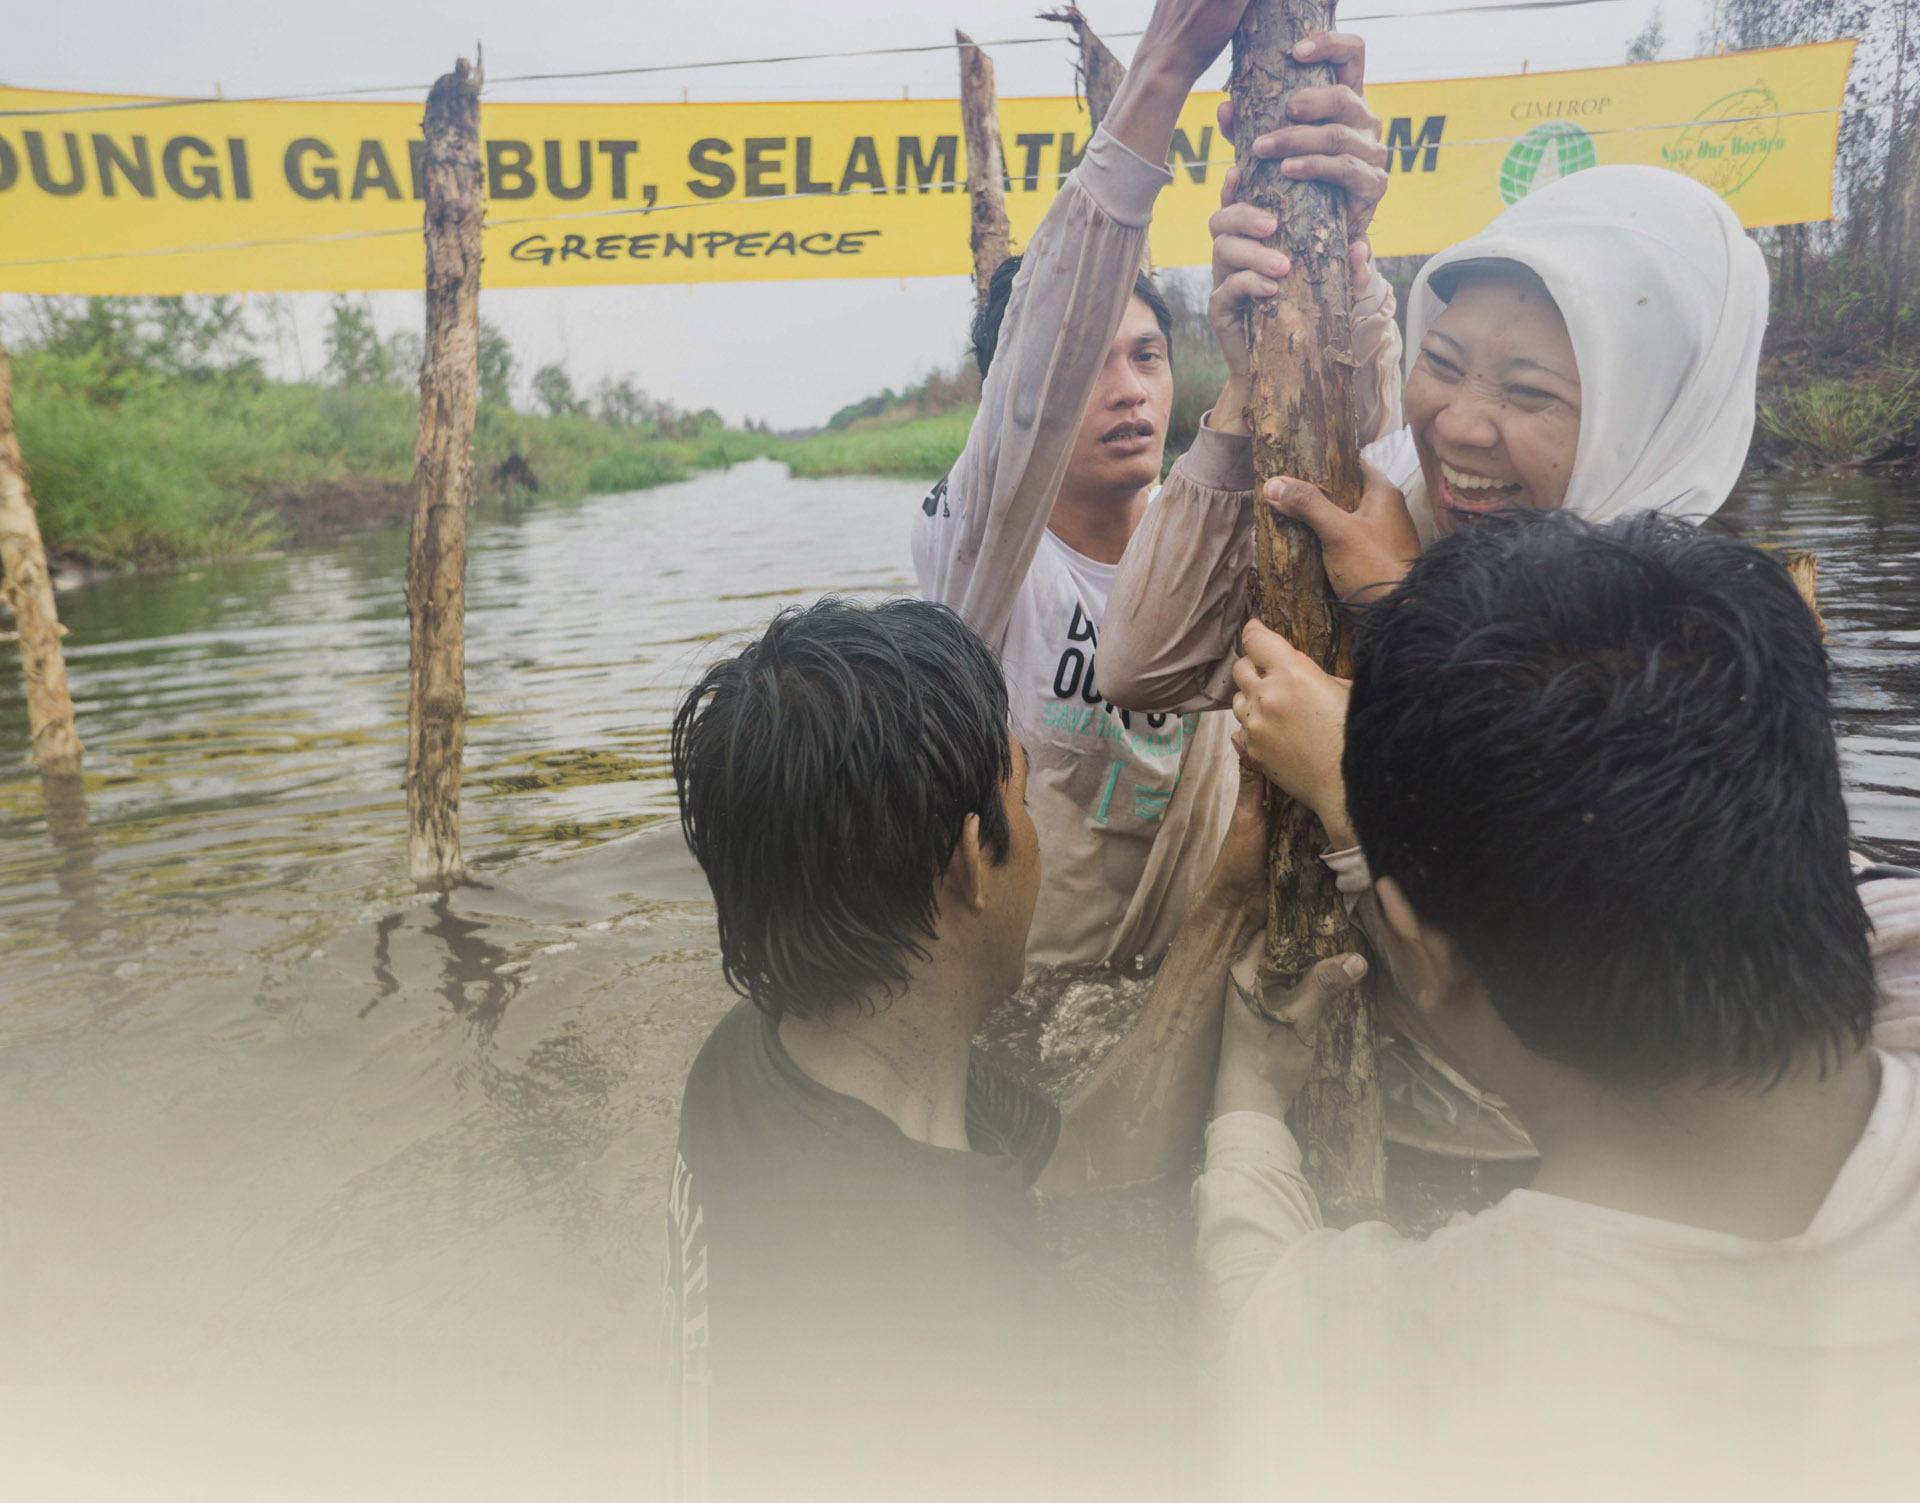 Damming Activity in Central Kalimantan. © Ardiles Rante / Greenpeace